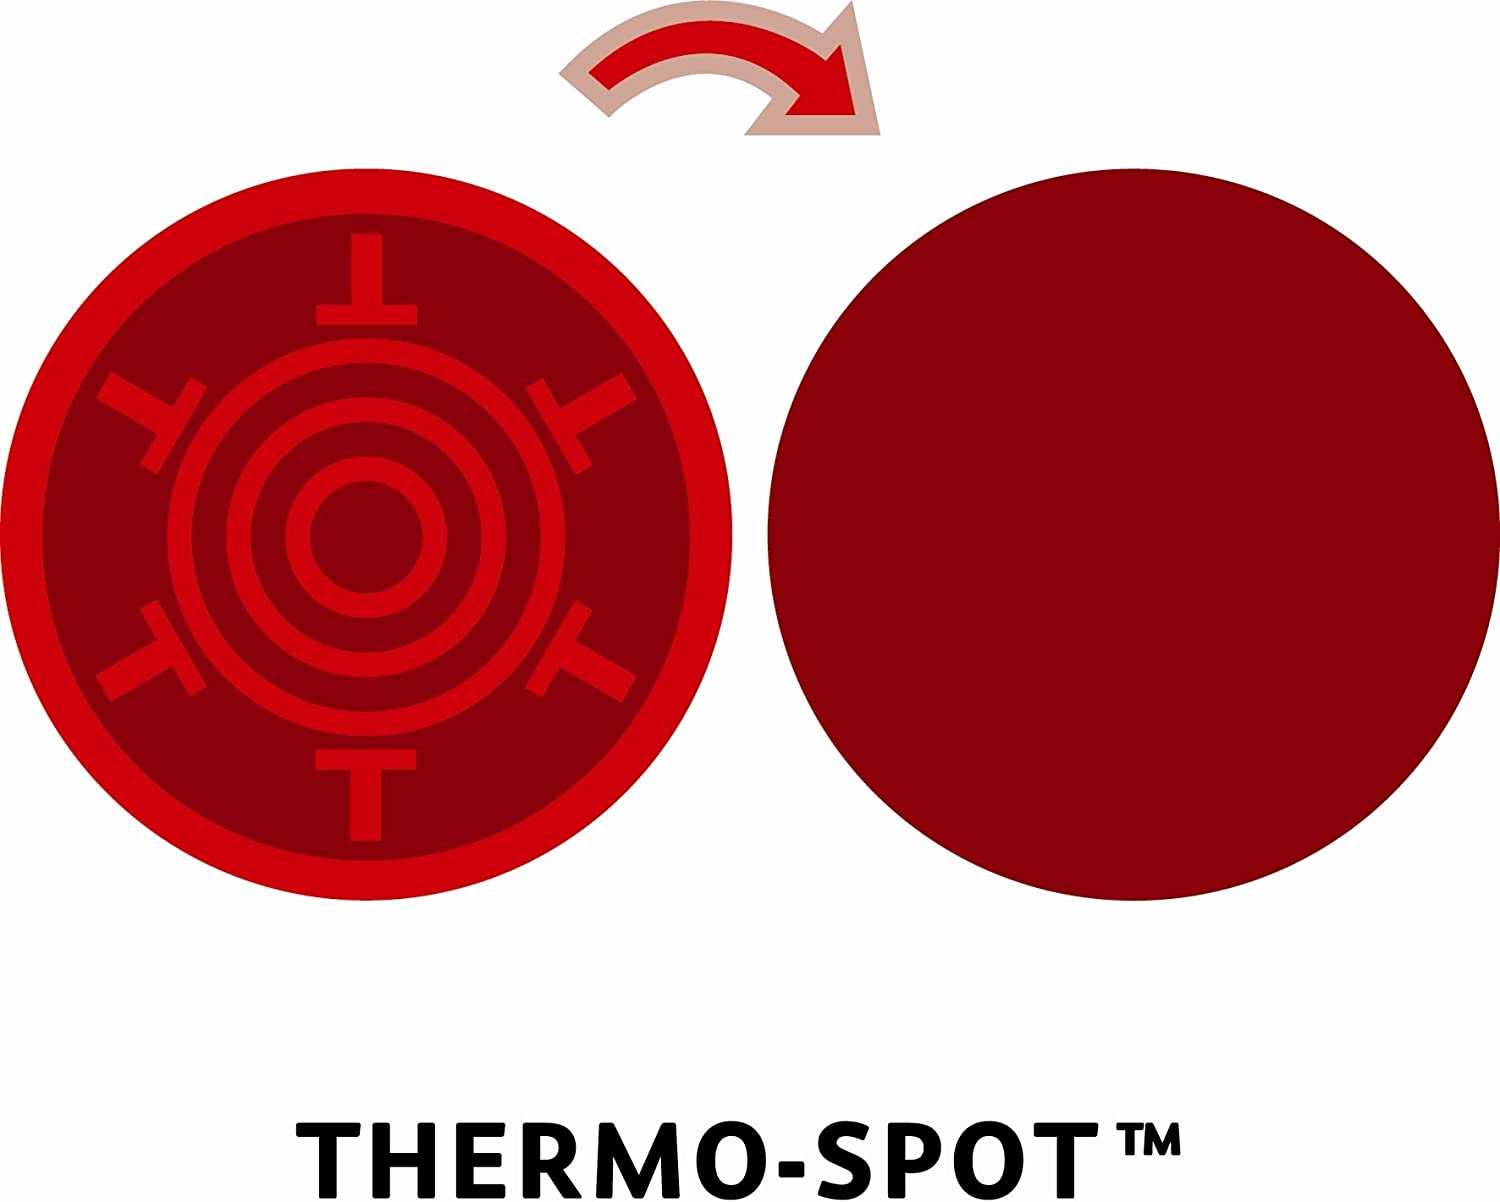 Tefal d08619/ Evidence Thermo-Spot Optimal Evidence Wok po/êle sans Couvercle 28/ cm